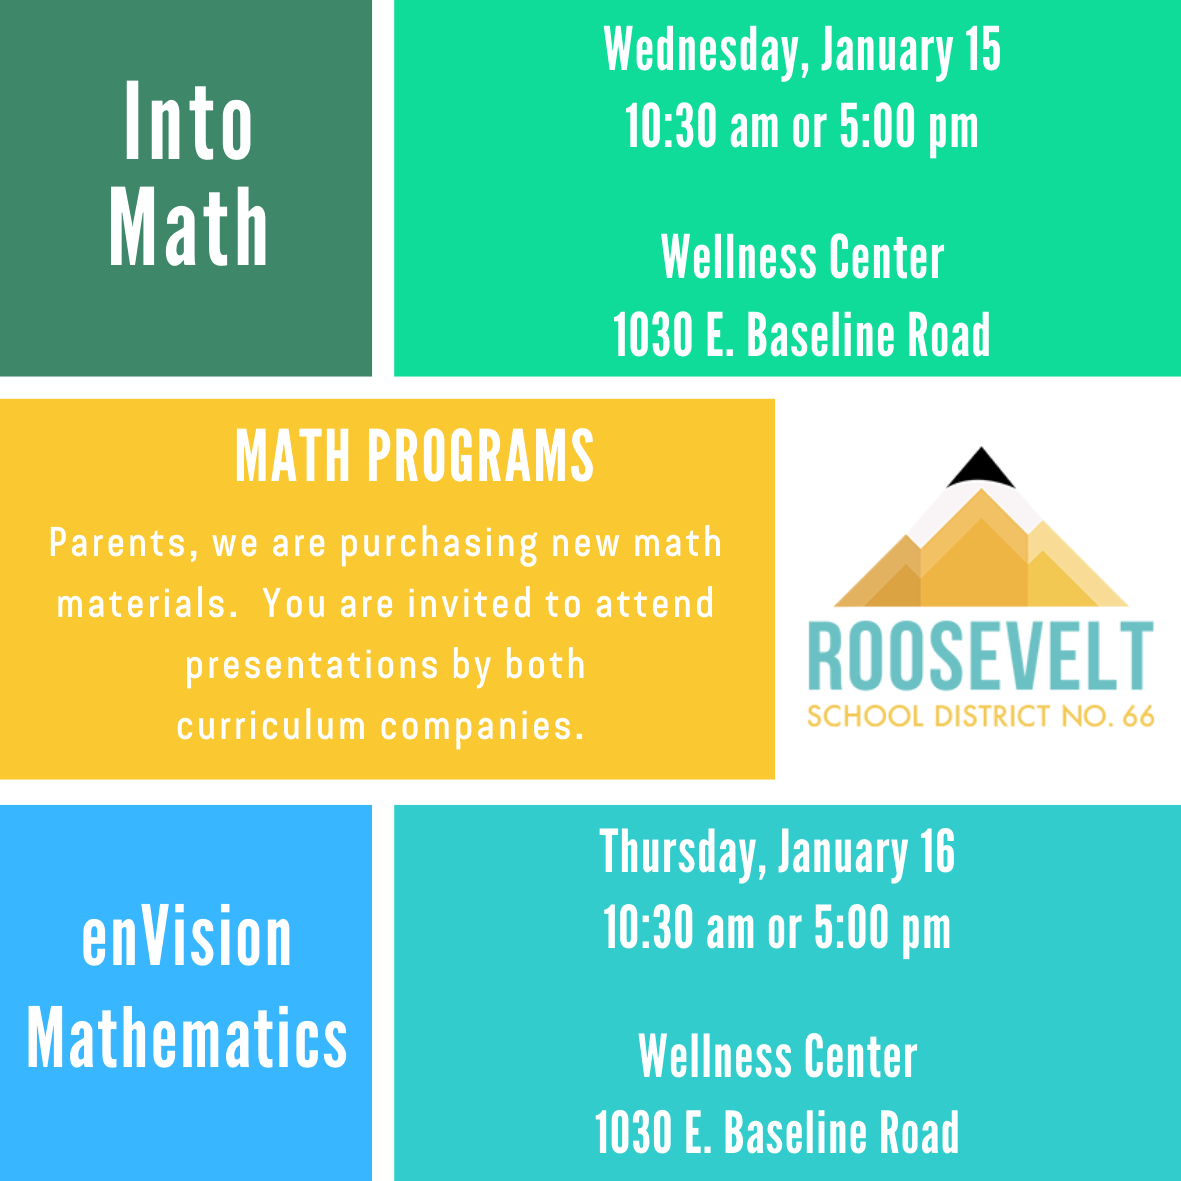 Information on  math curriculum presentations